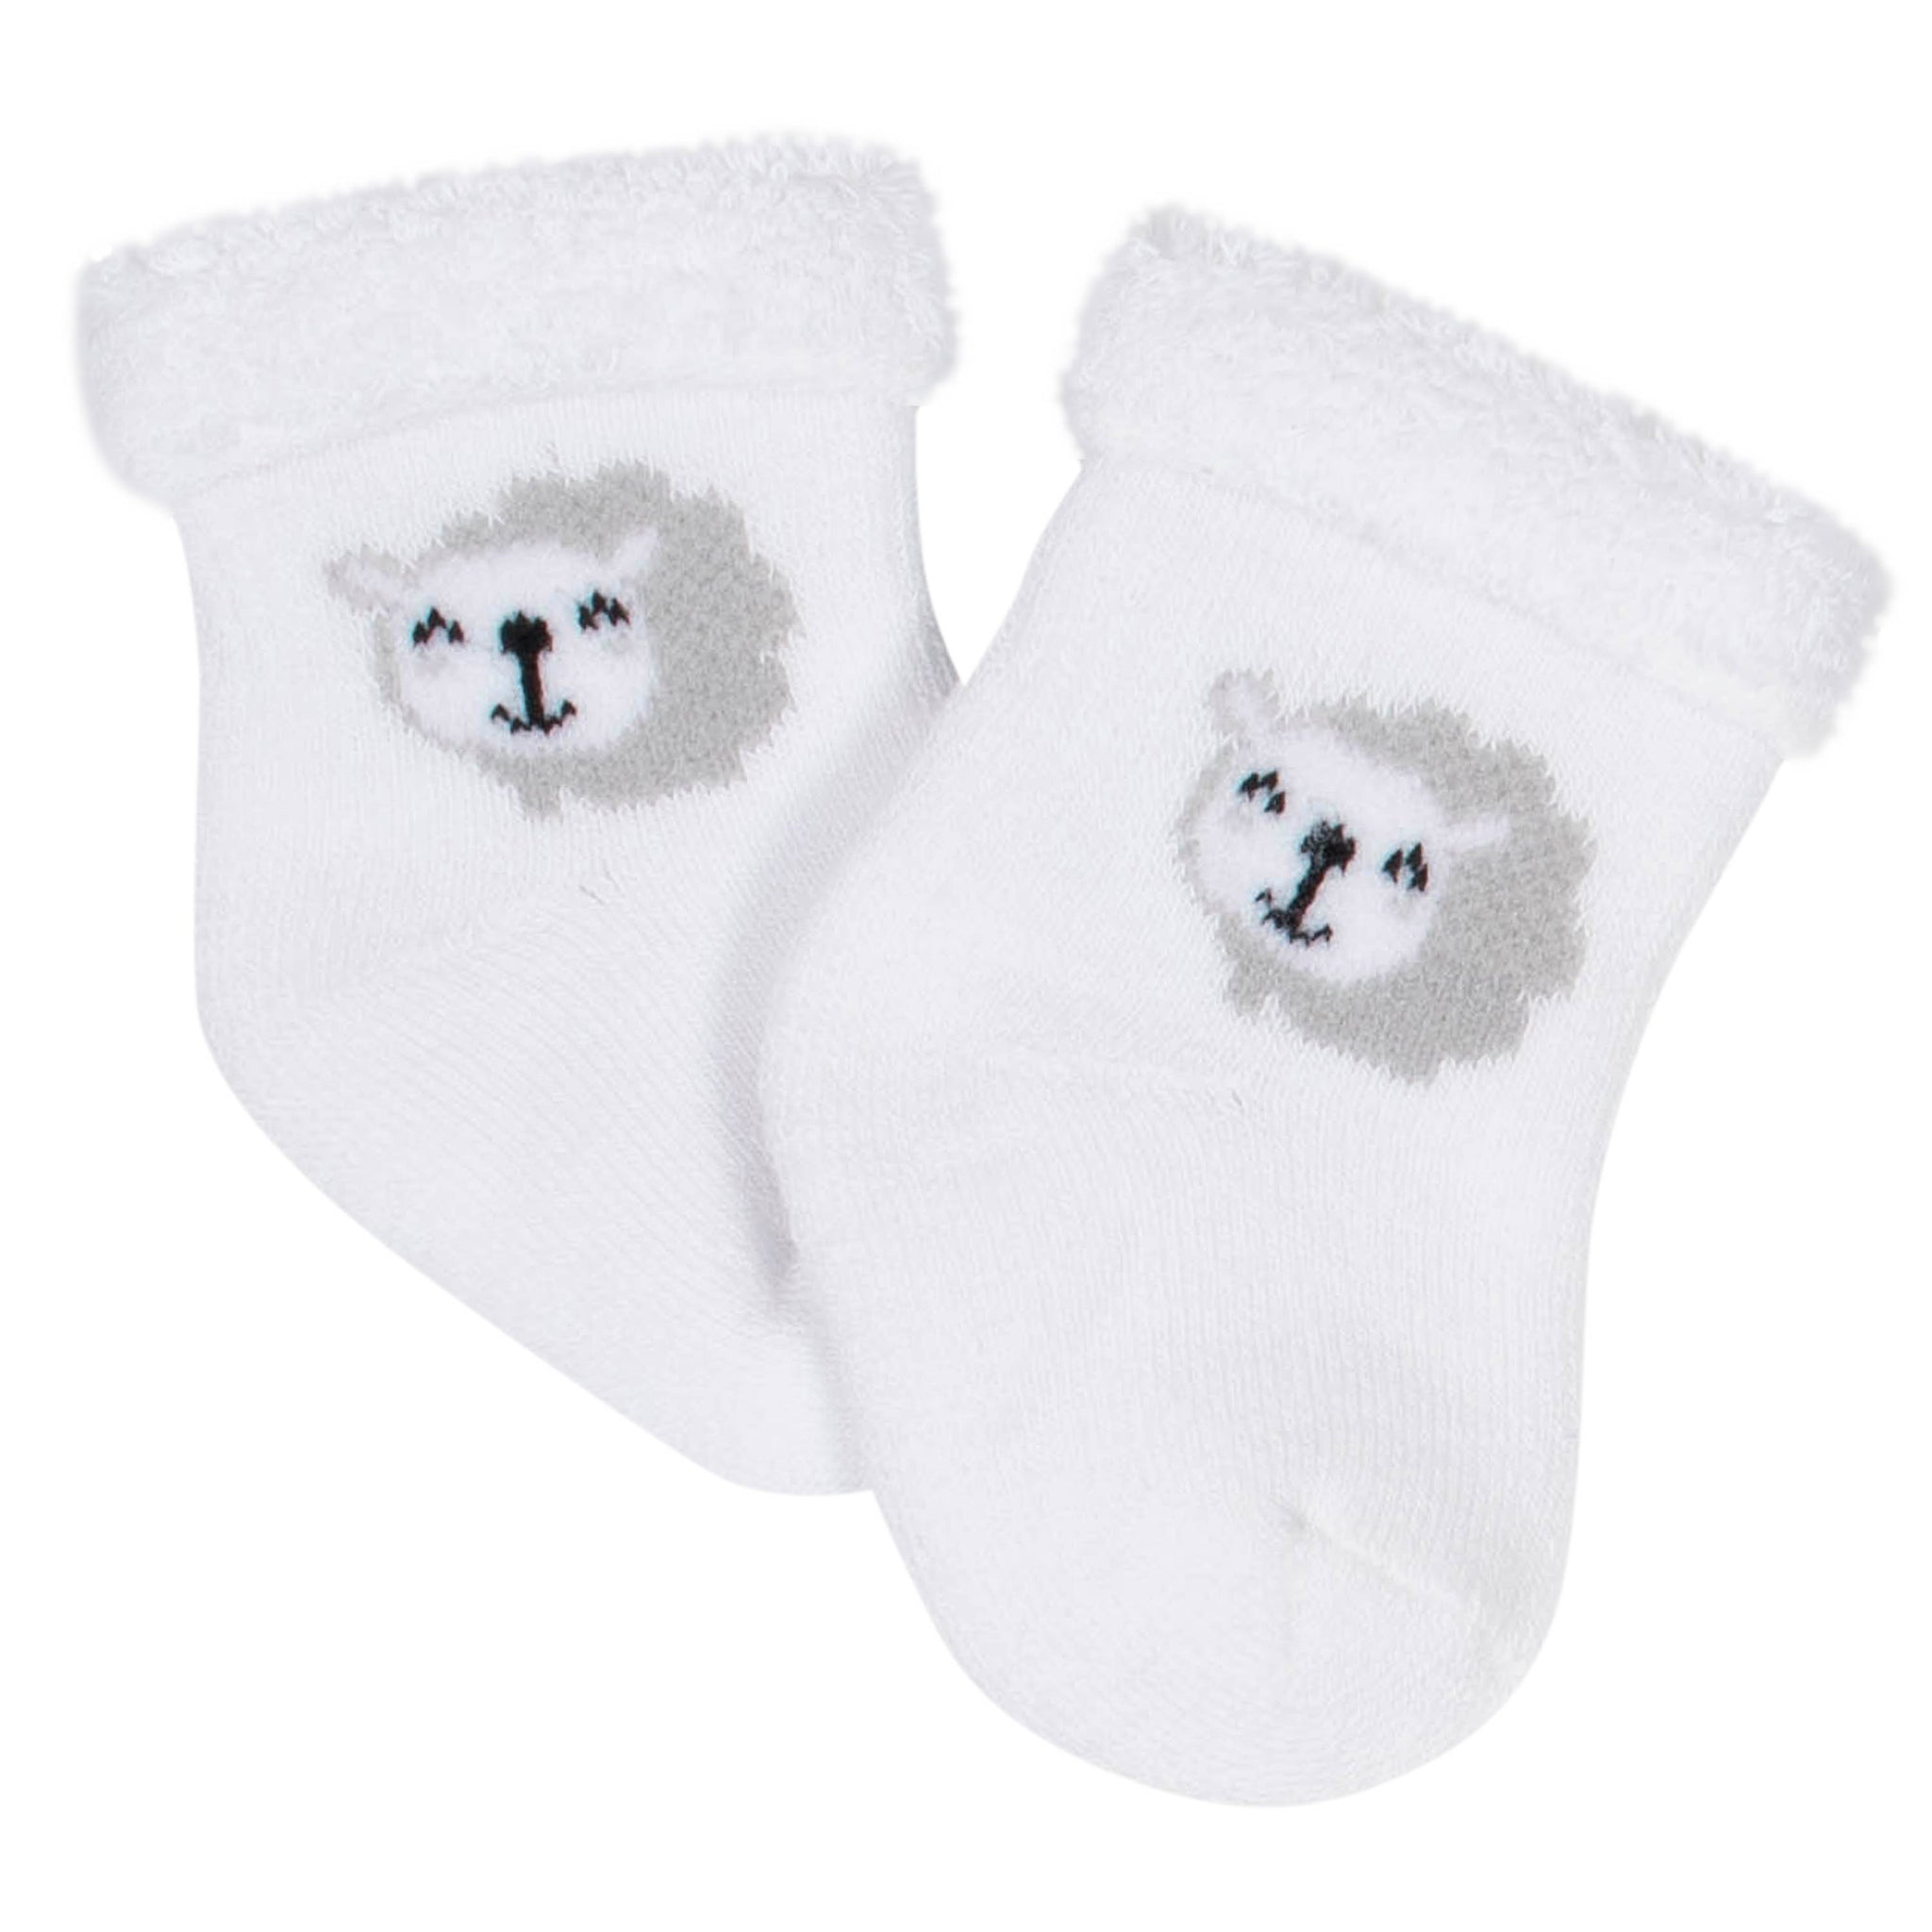 6-Pack Baby Neutral Lamb Wiggle-Proof Terry Bootie Socks-Gerber Childrenswear Wholesale